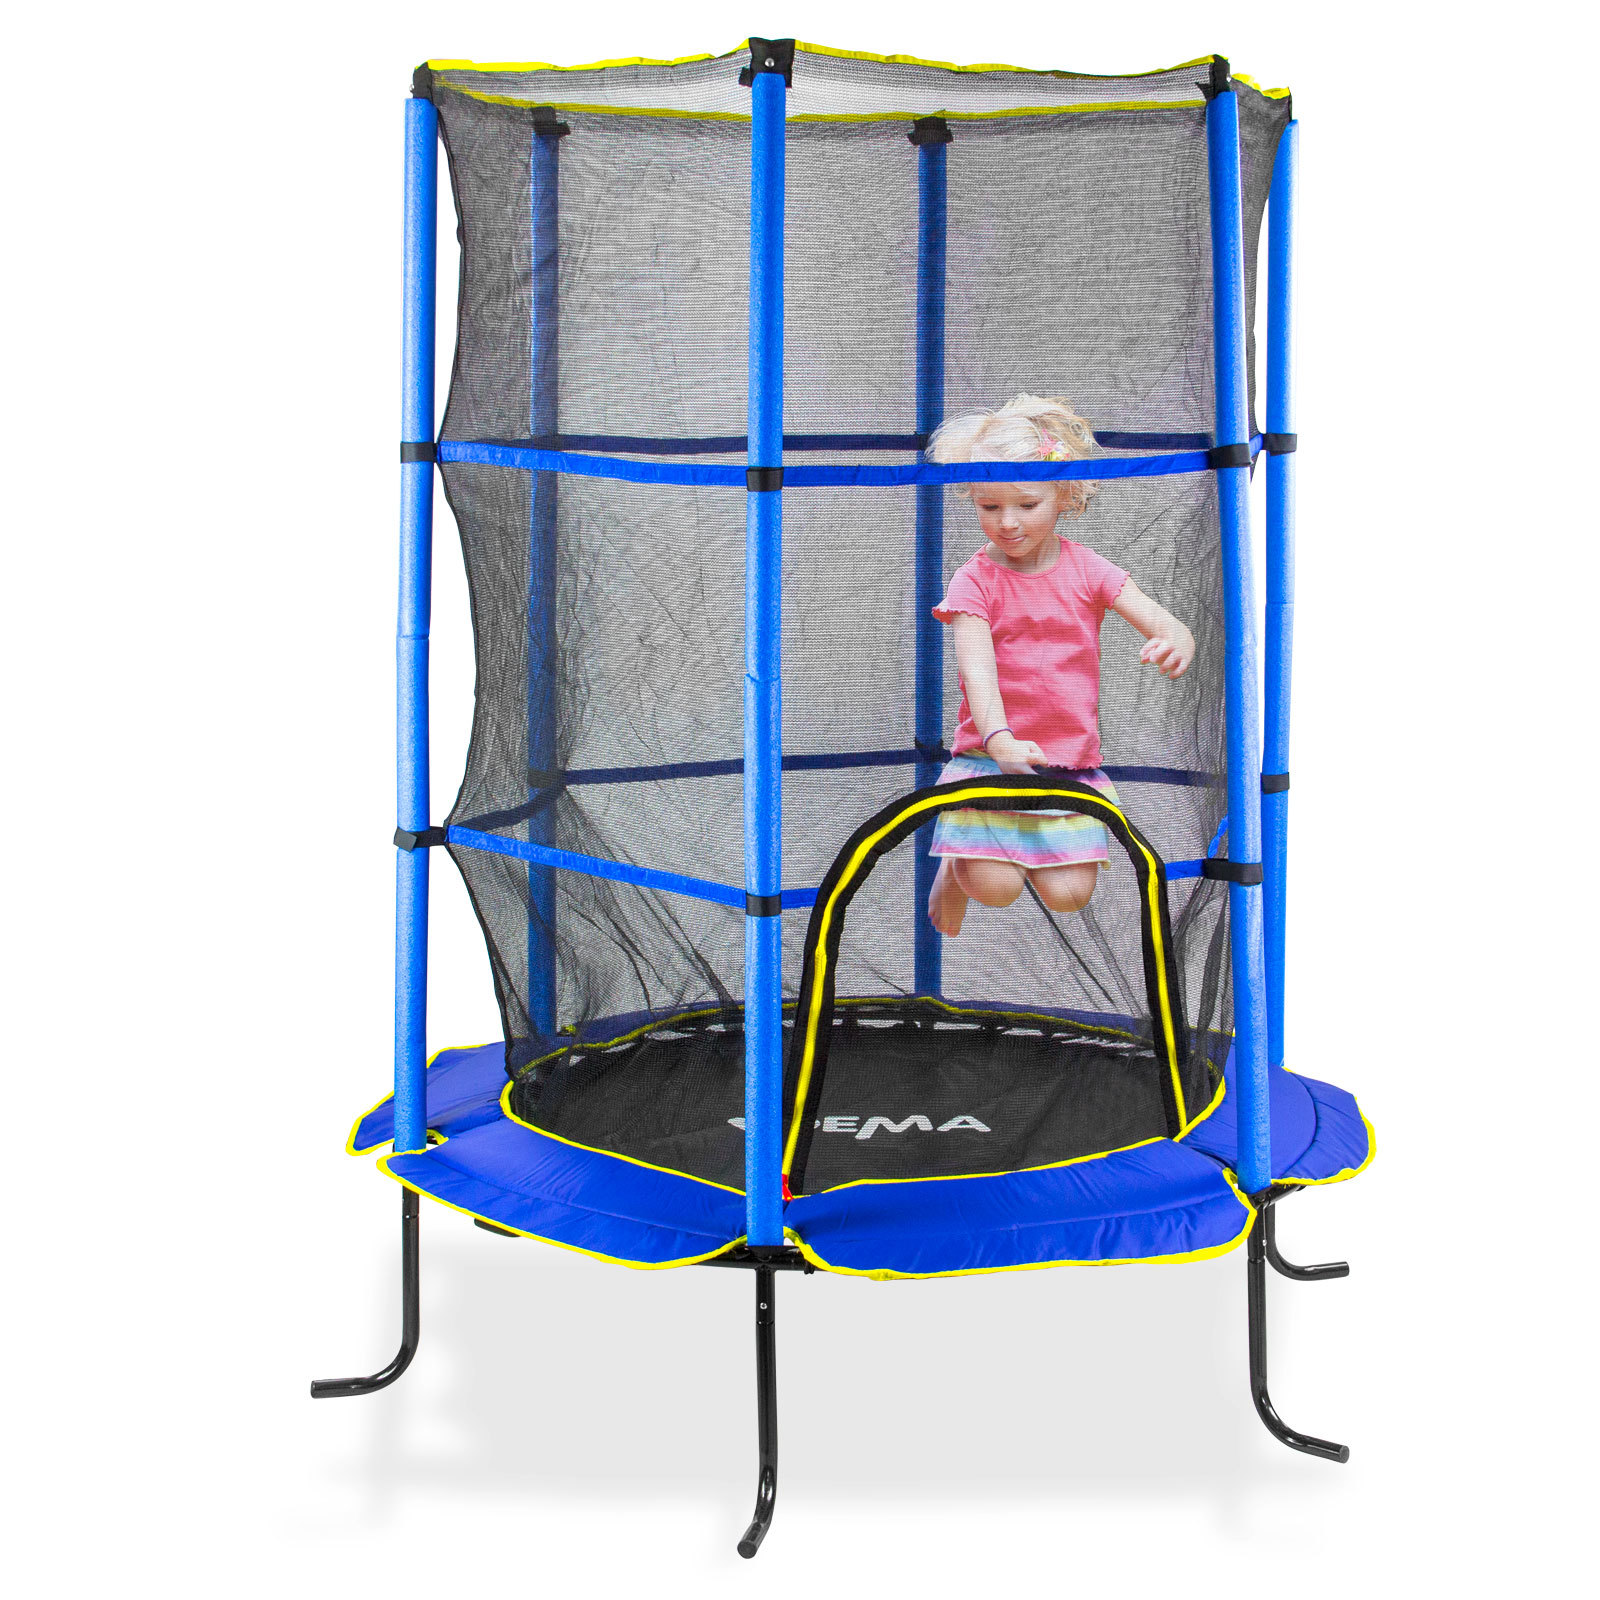 trampolin gartentrampolin kindertrampolin fitness 140 cm belastbar bis 25 kg ebay. Black Bedroom Furniture Sets. Home Design Ideas